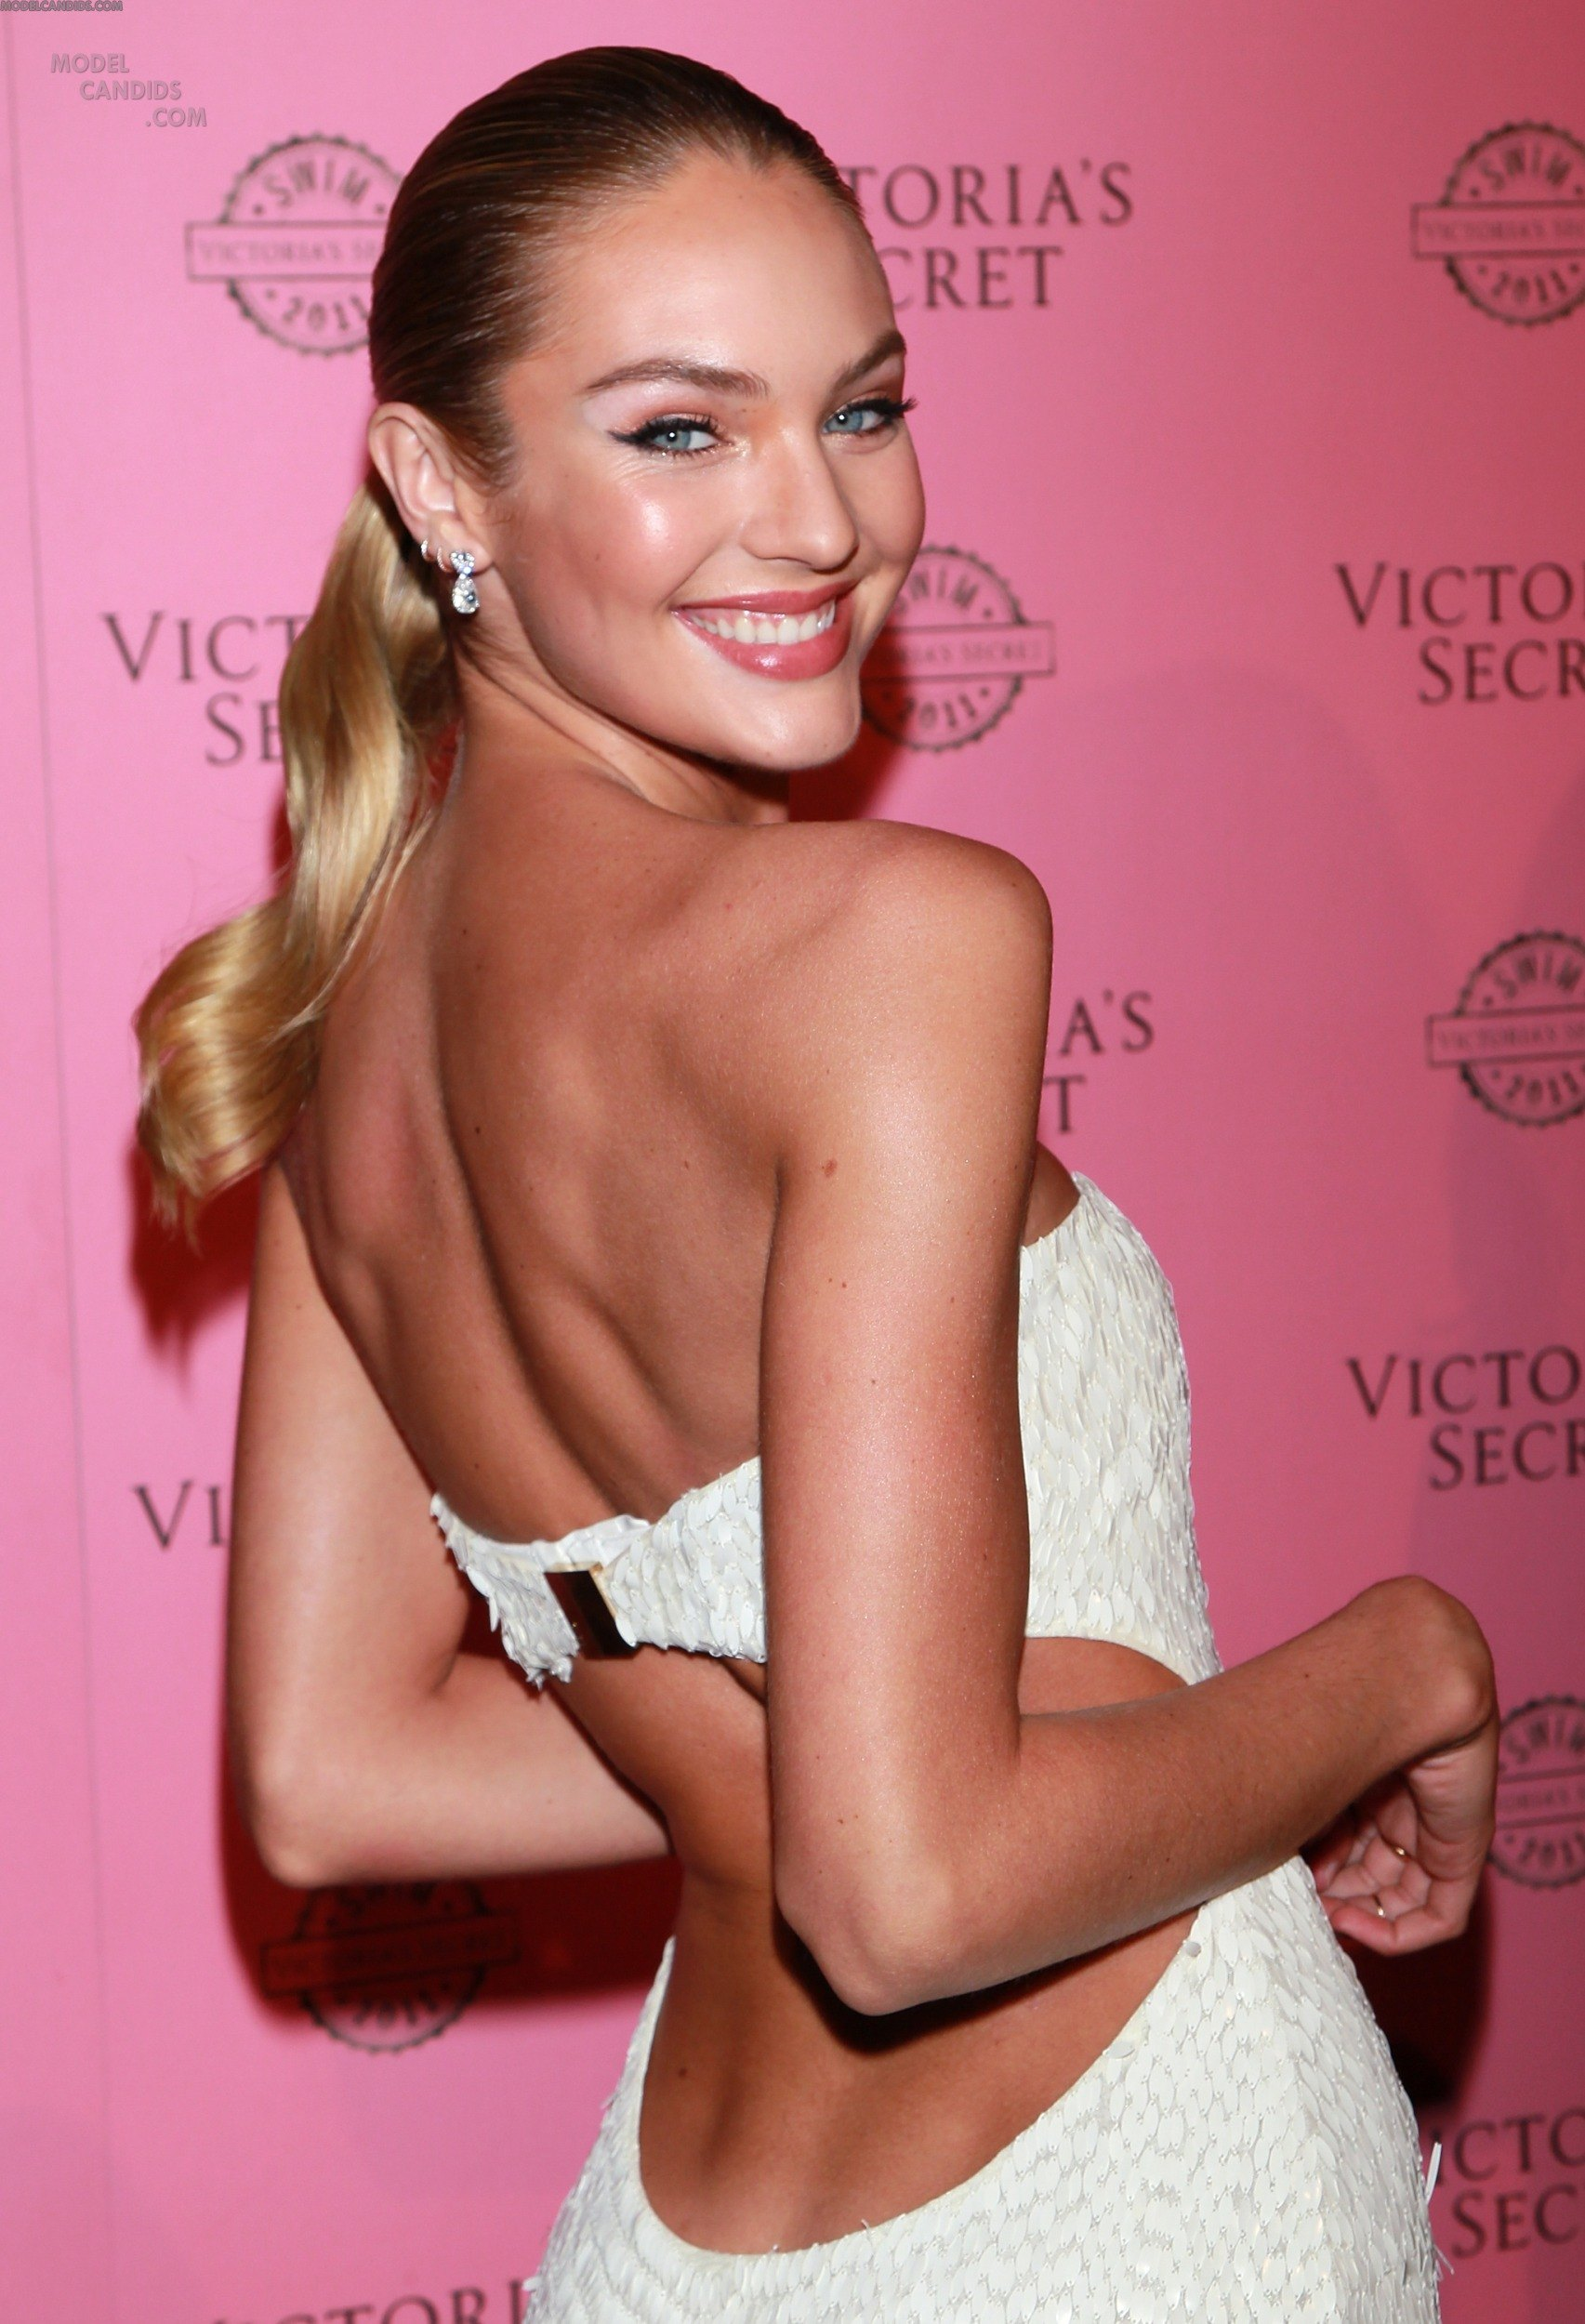 Candice Swanepoel | one of the highest paid models